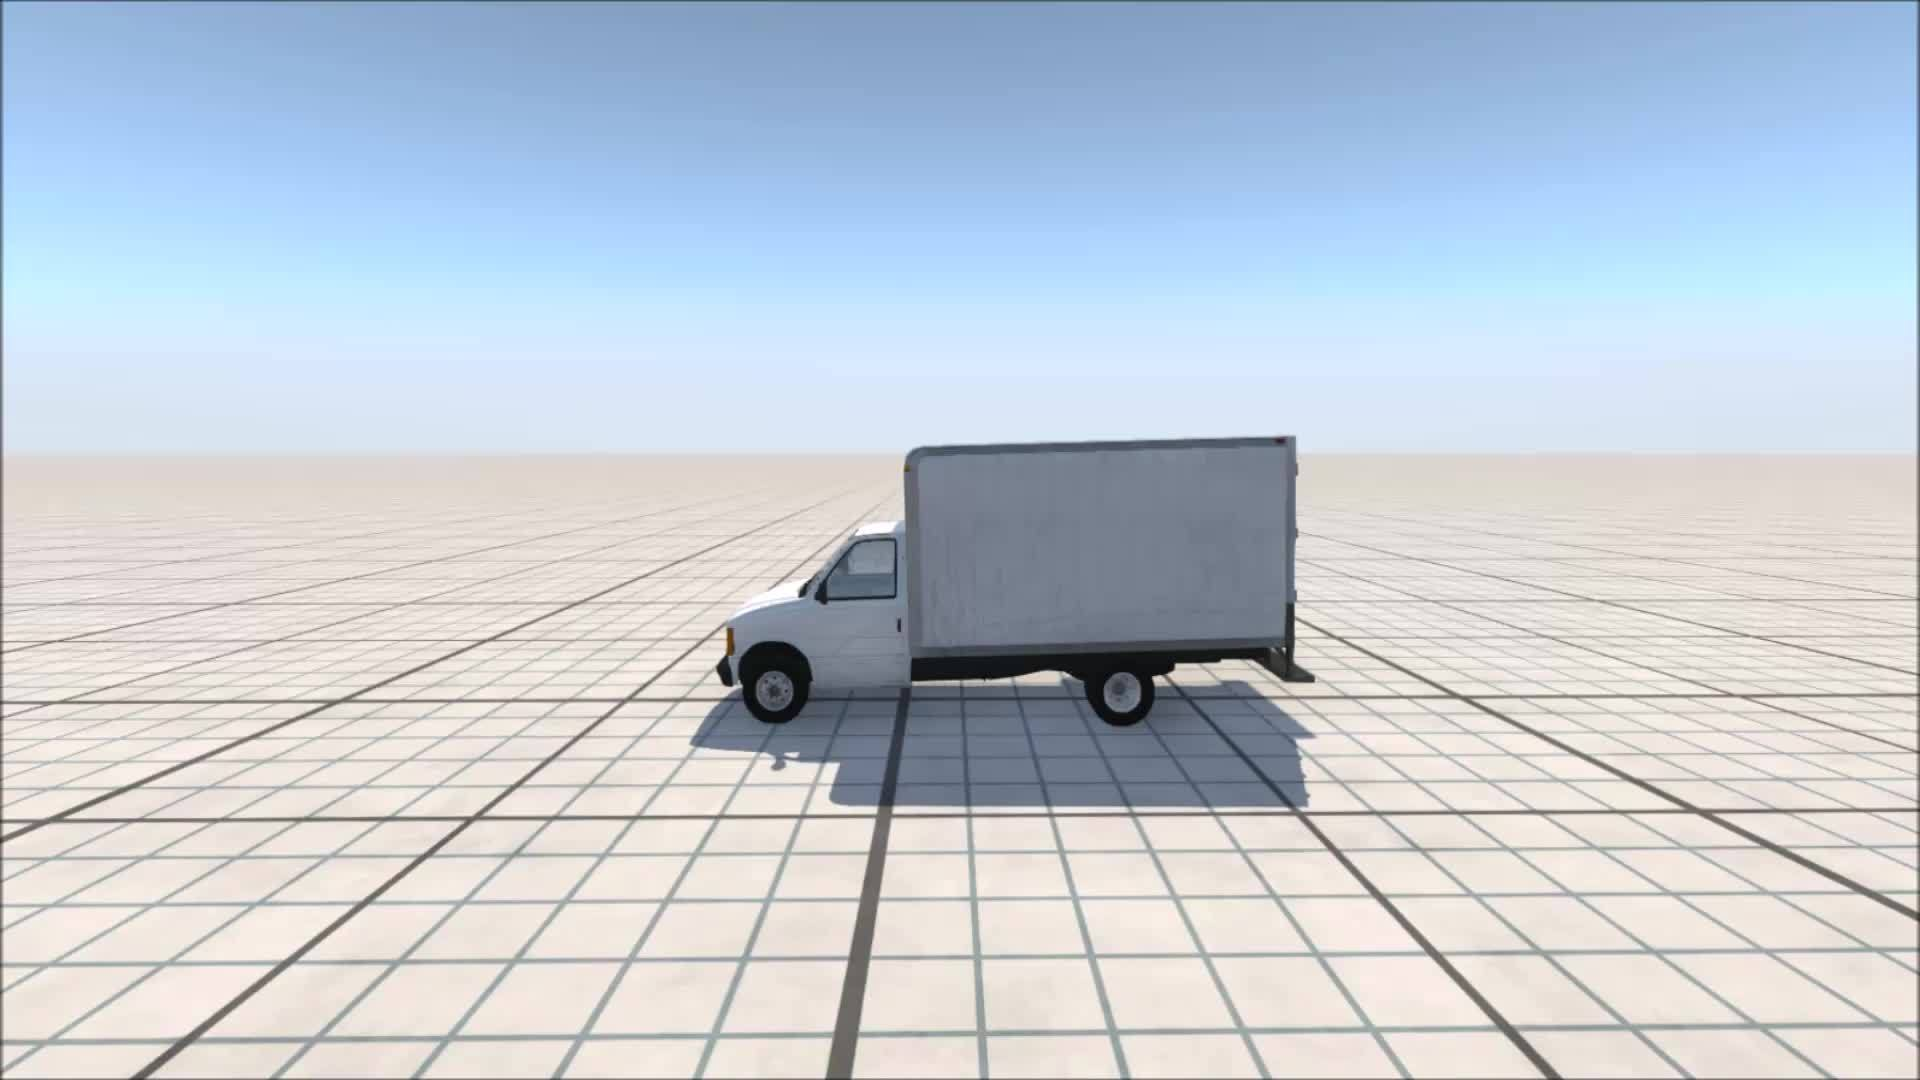 beamng, Cement Crush 2 GIFs